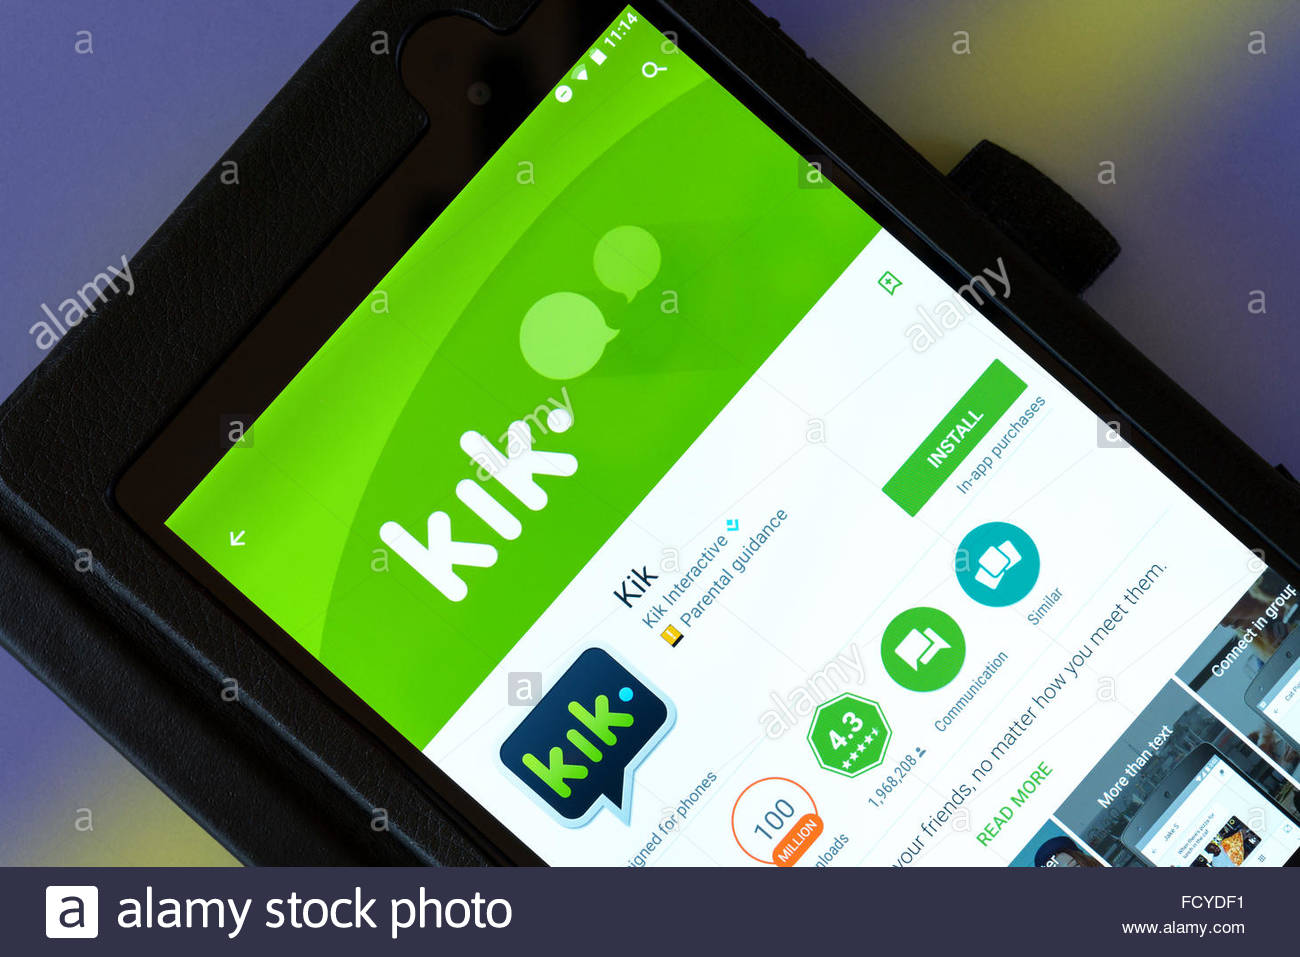 Instant messenger app kik on an android tablet PC, Dorset, England